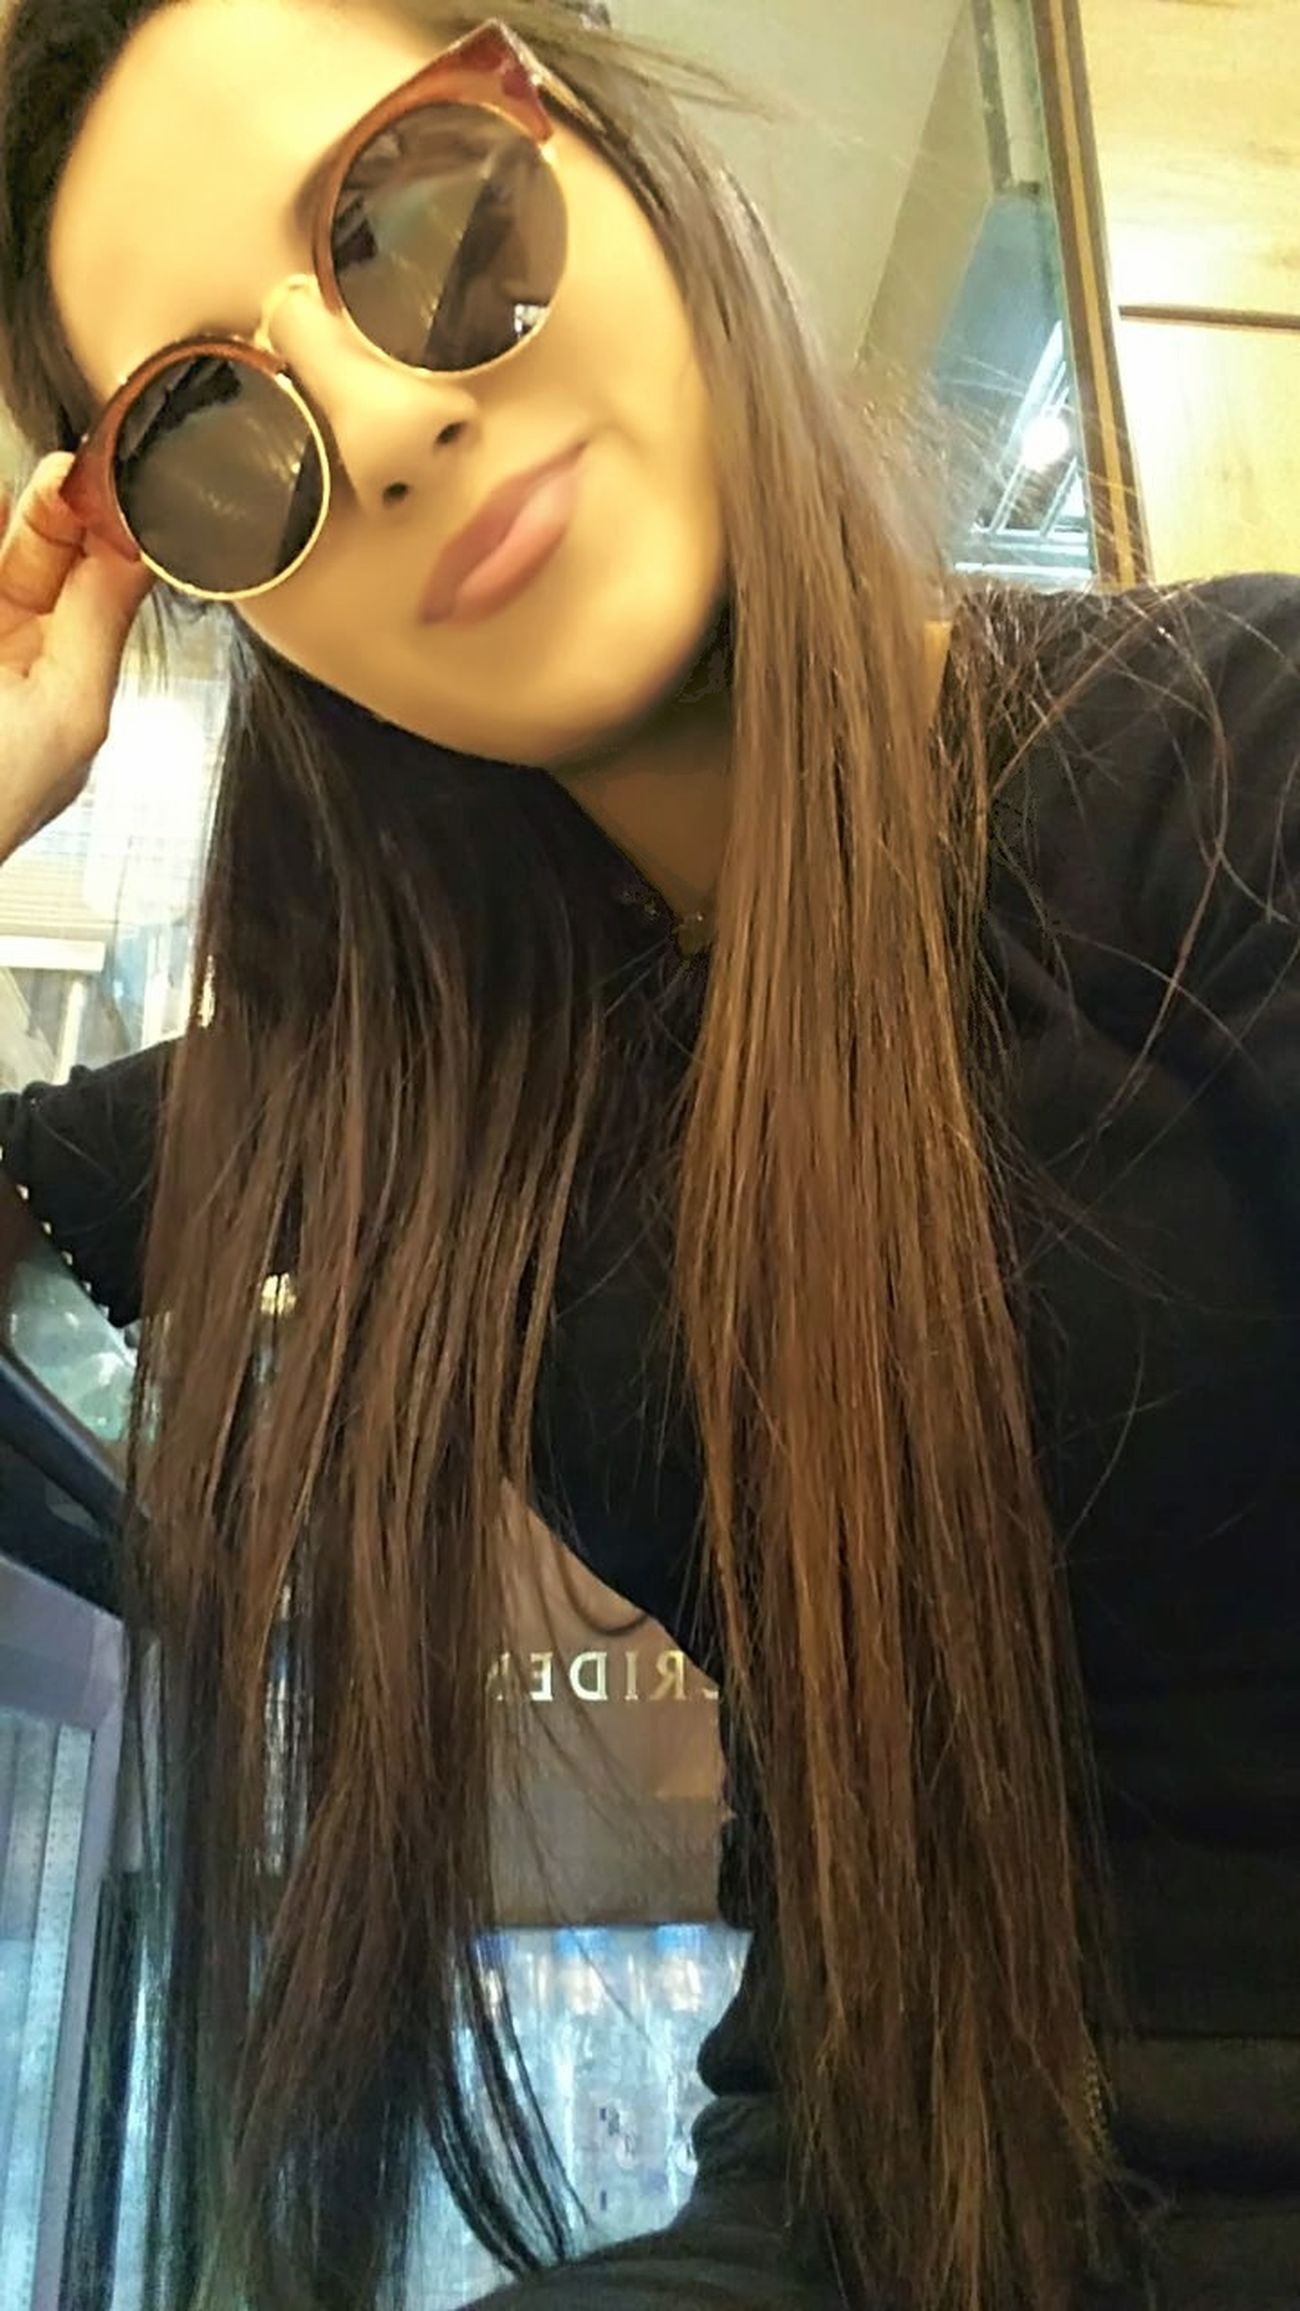 Only Women Sunglasses👓 Long Hair One Person Beautiful Woman